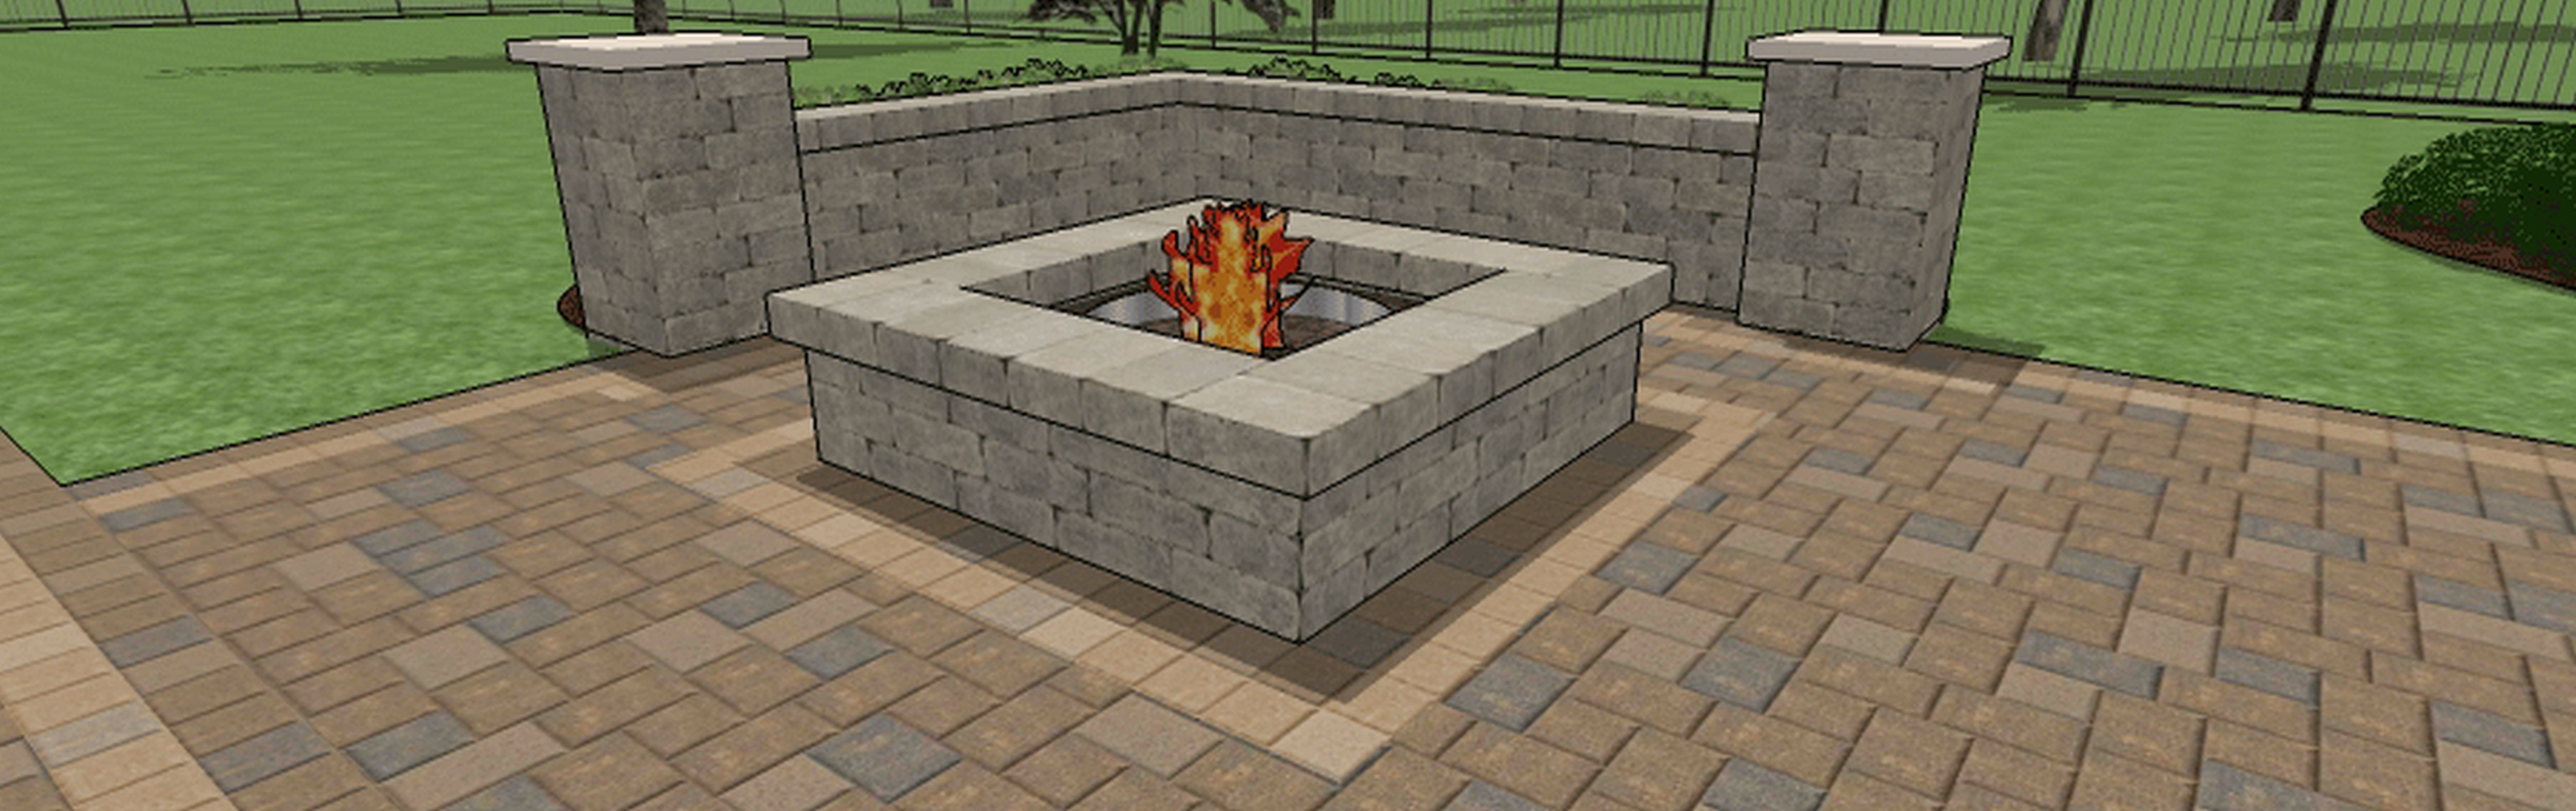 Backyard bbq ideas yc5nggfk hot cool backyard ideas for Bbq designs and plans